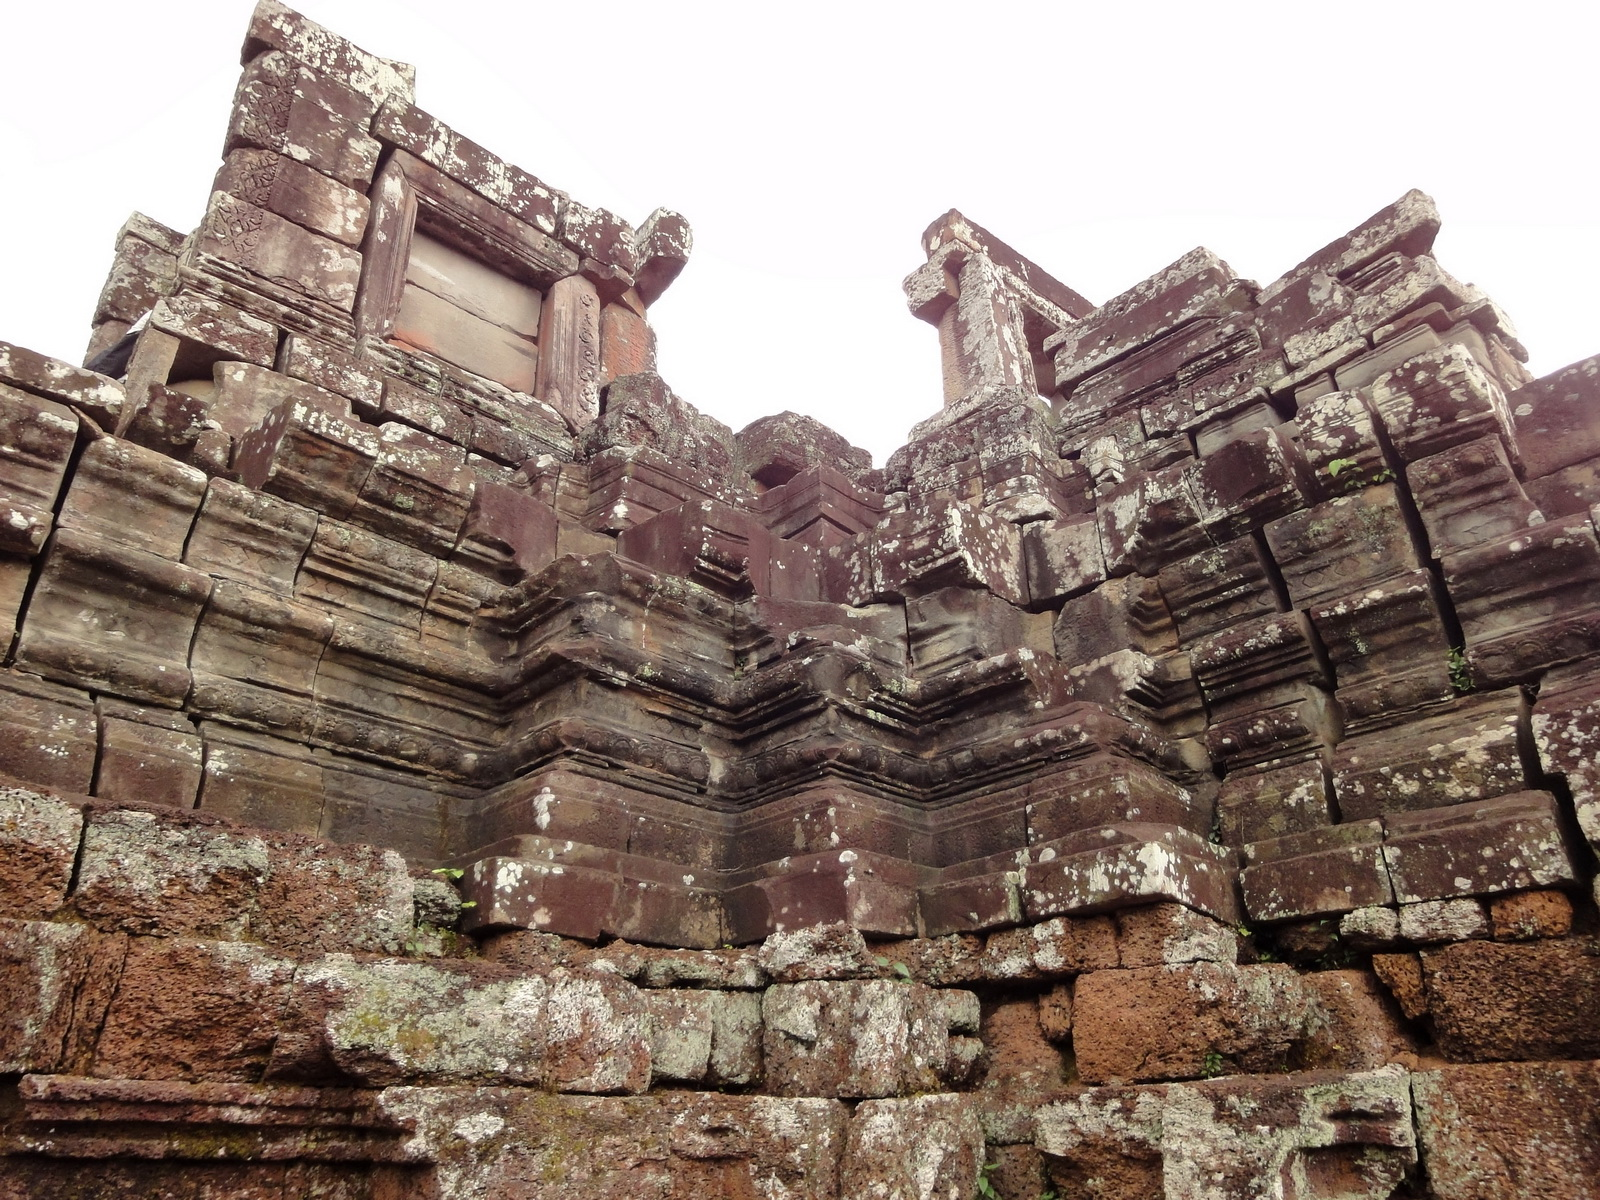 Phimeanakas central tower Southern views Hindu Khleang style 17